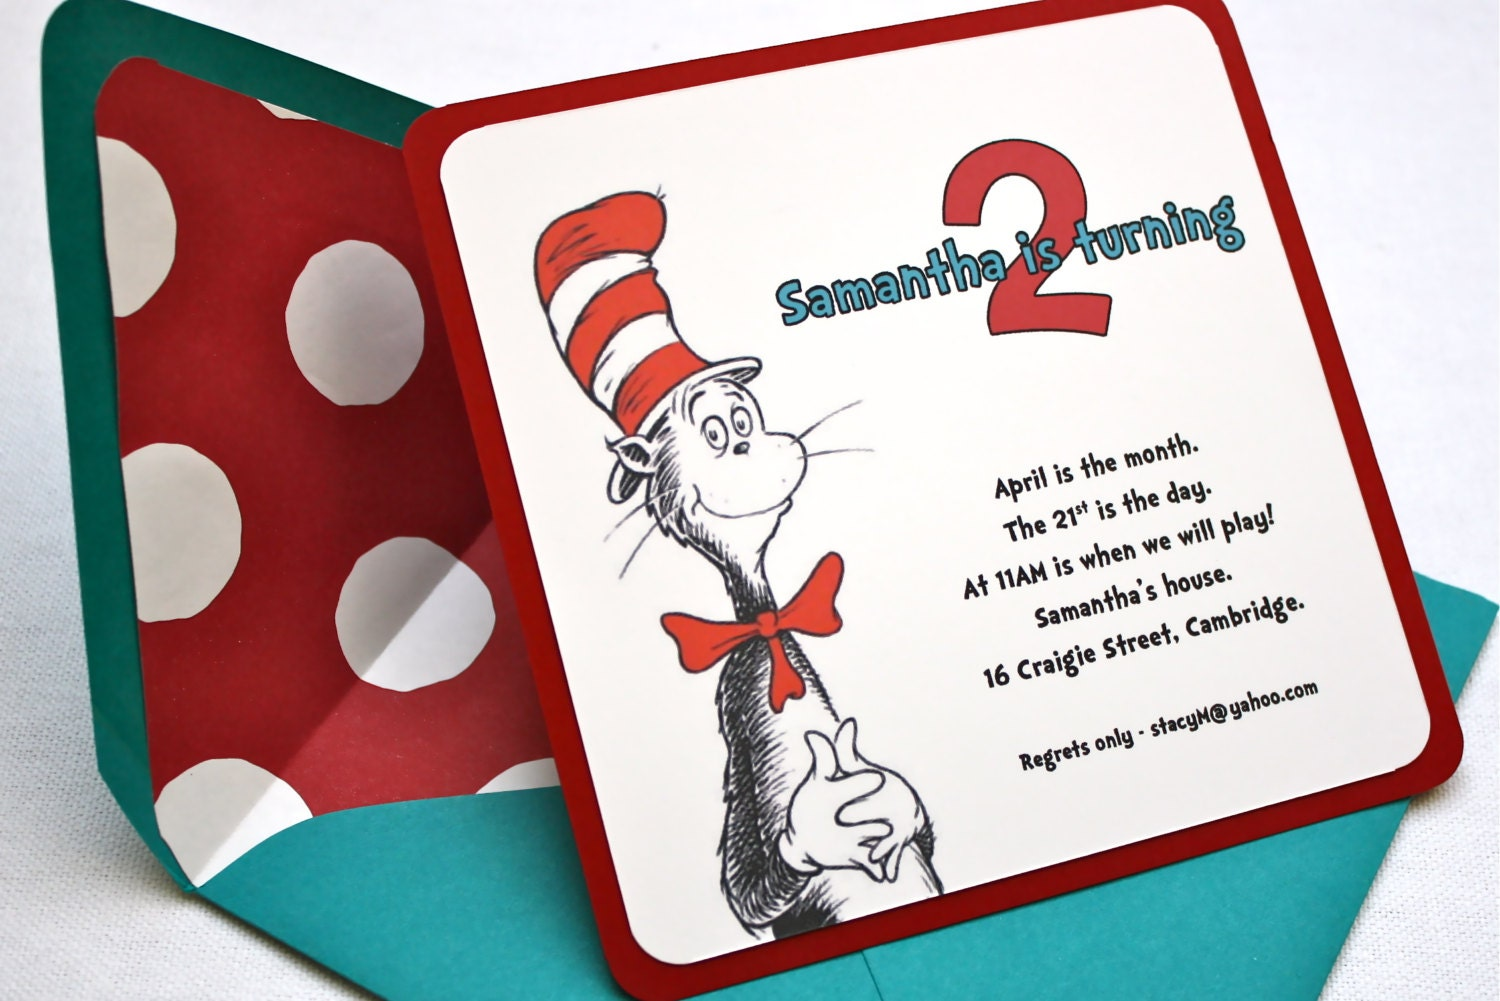 Dr. Seuss Birthday Party Invitation Square Envelope and | Etsy